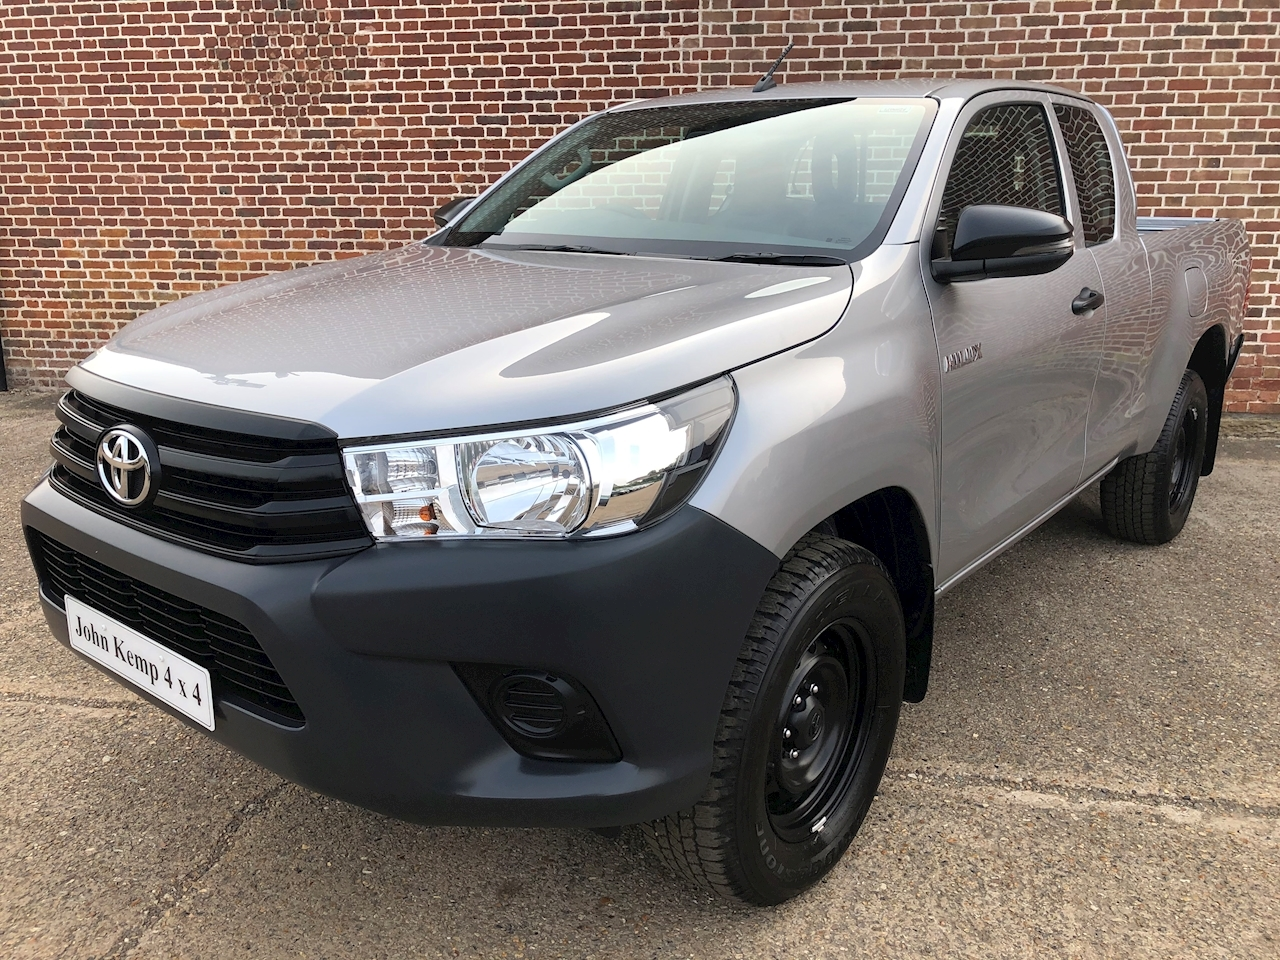 Toyota Hilux Active 4Wd D-4D Ecb 2.4 4dr Pick Up Manual Diesel